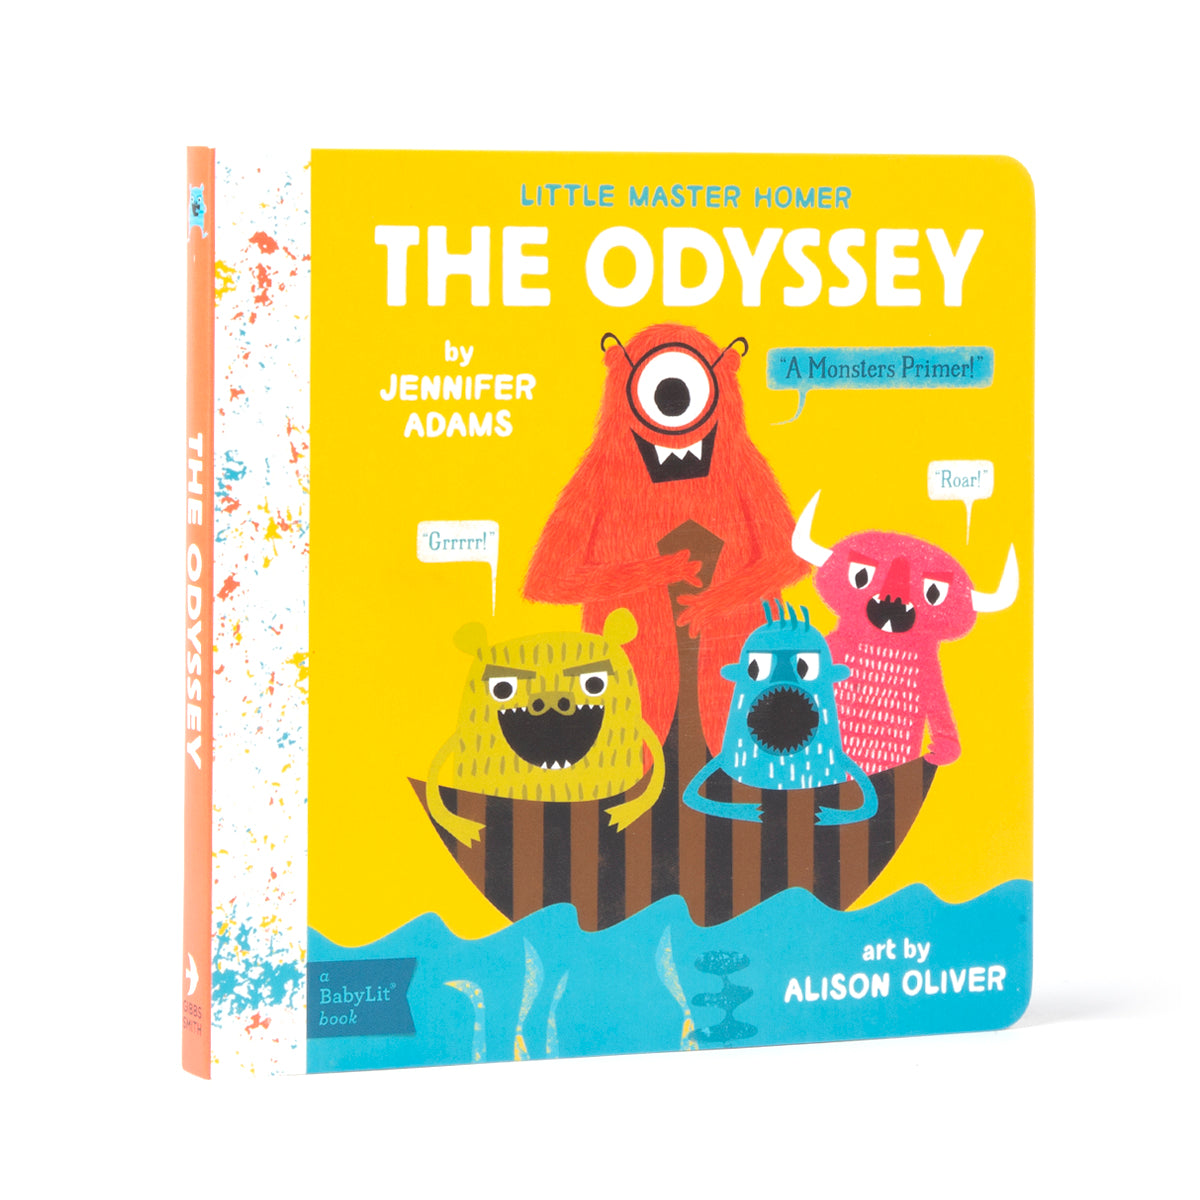 The Odyssey: Monsters Primer